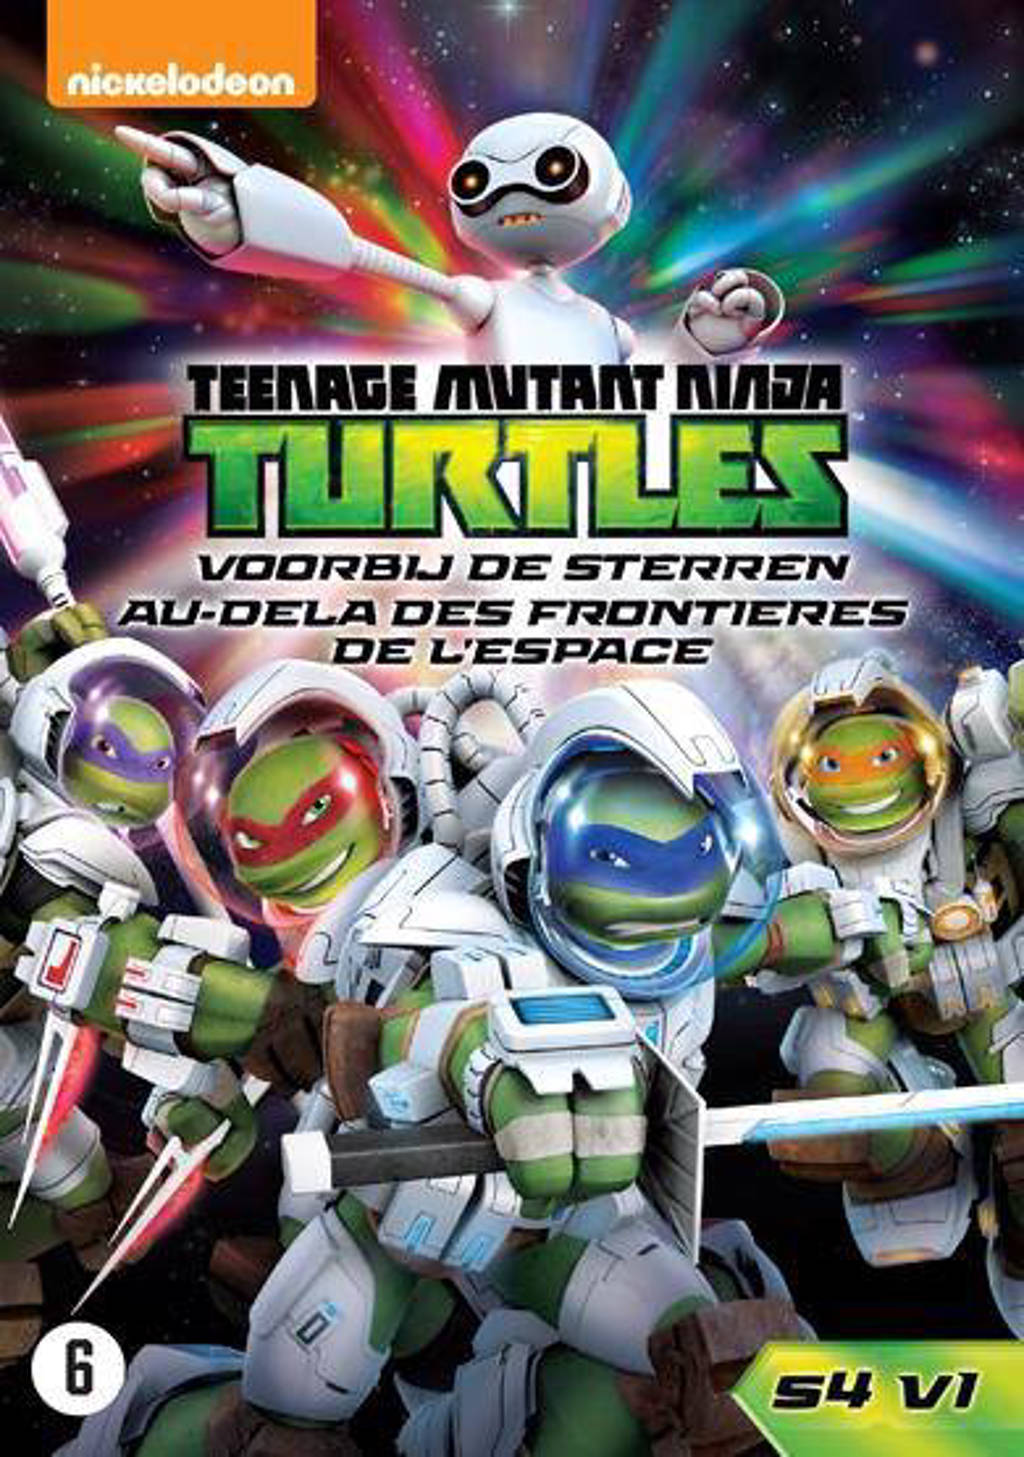 Teenage Mutant Ninja Turtles Seizoen 4 Deel 1 Dvd Wehkamp